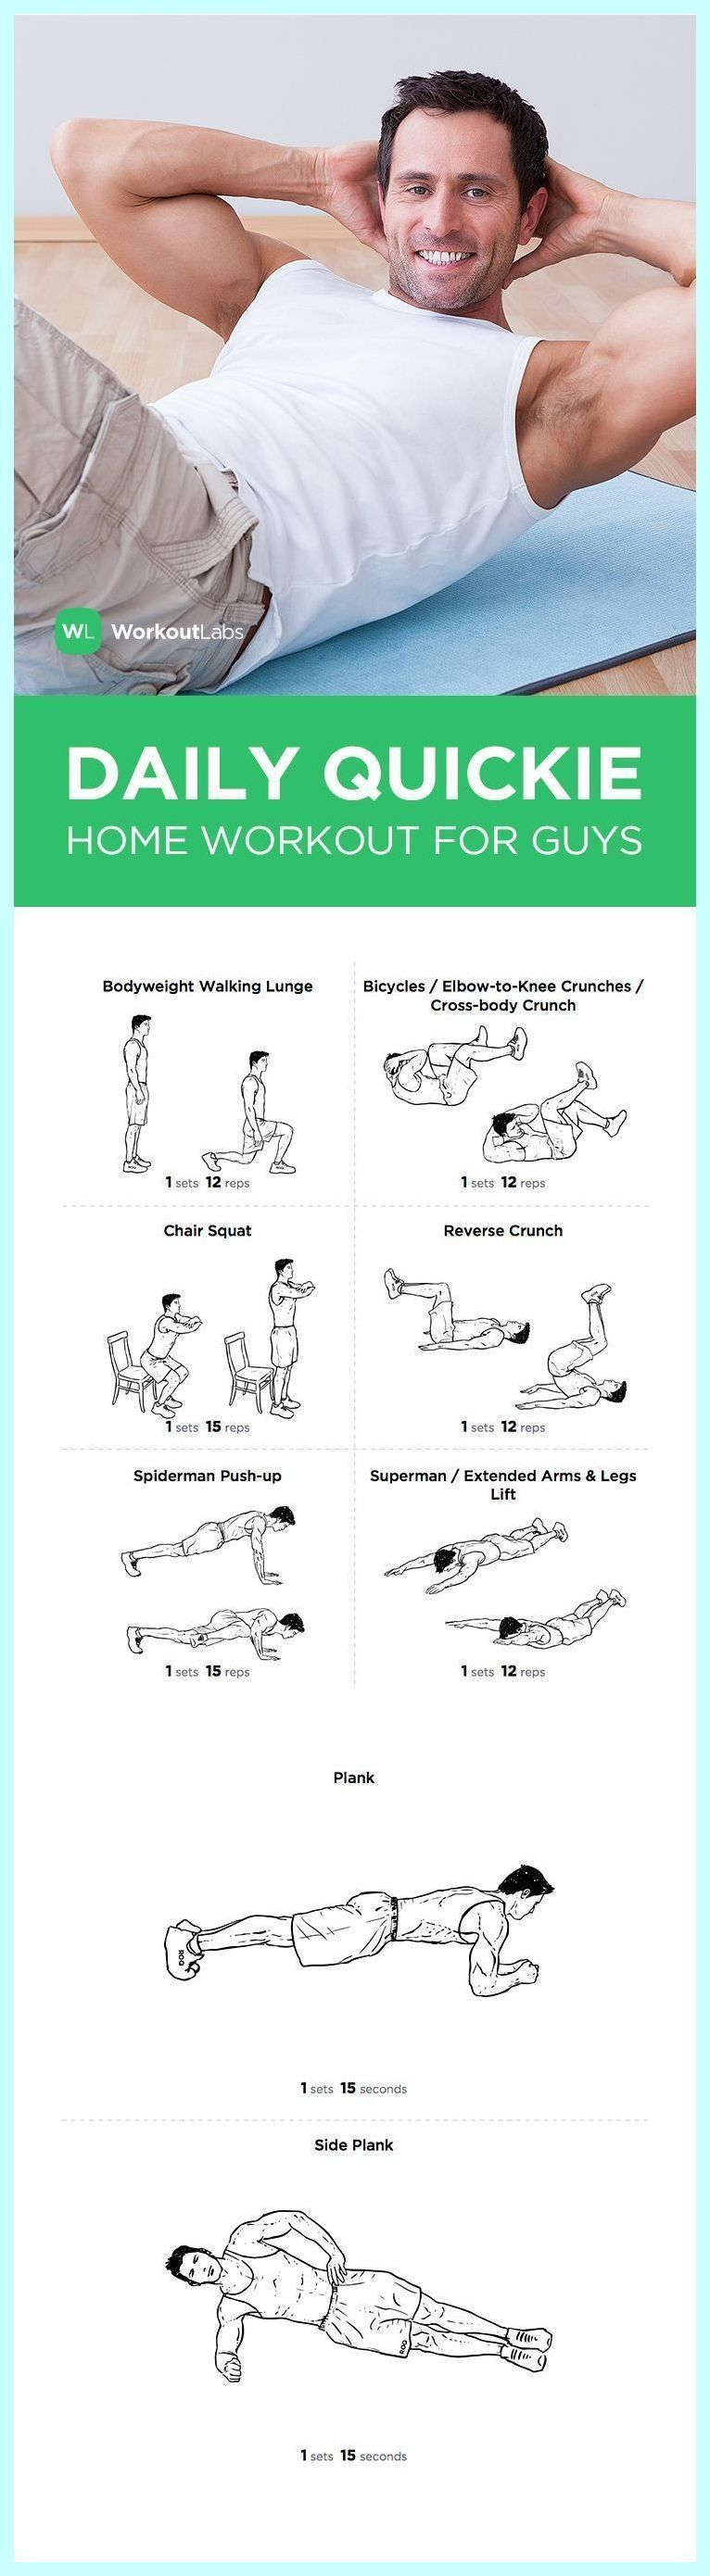 FREE PDF: Daily Quickie Essential at Home Workout for Guys – visit wlabs.me/1tuD3Ci to downlo…